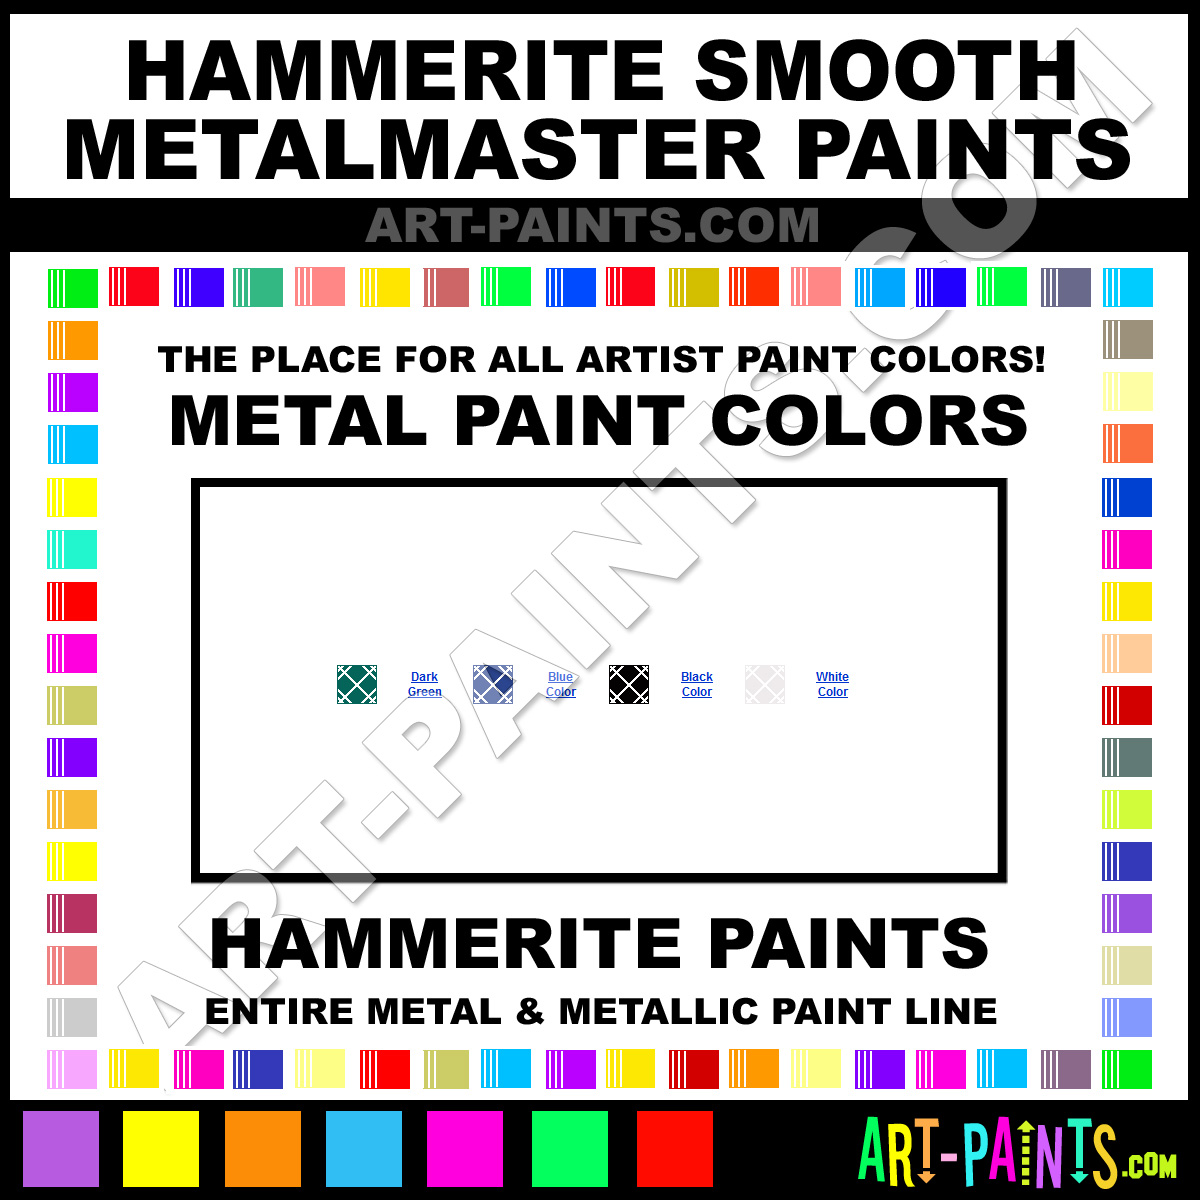 Hammered Paint Colors